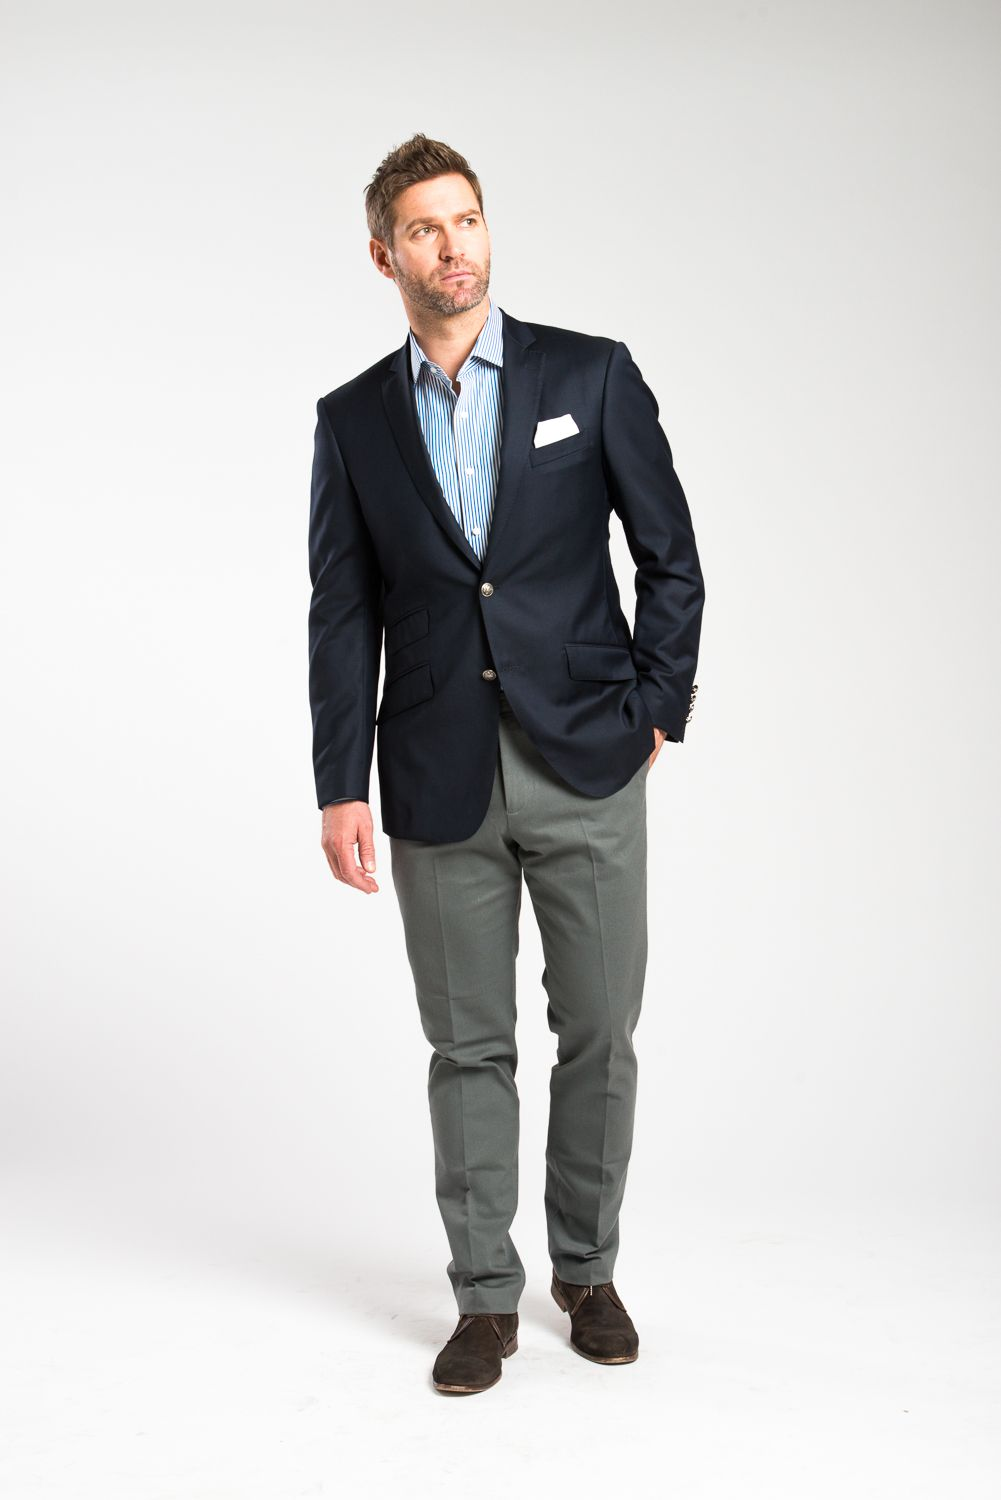 A Wilfred Newman Navy Blazer, and gray Twill pants